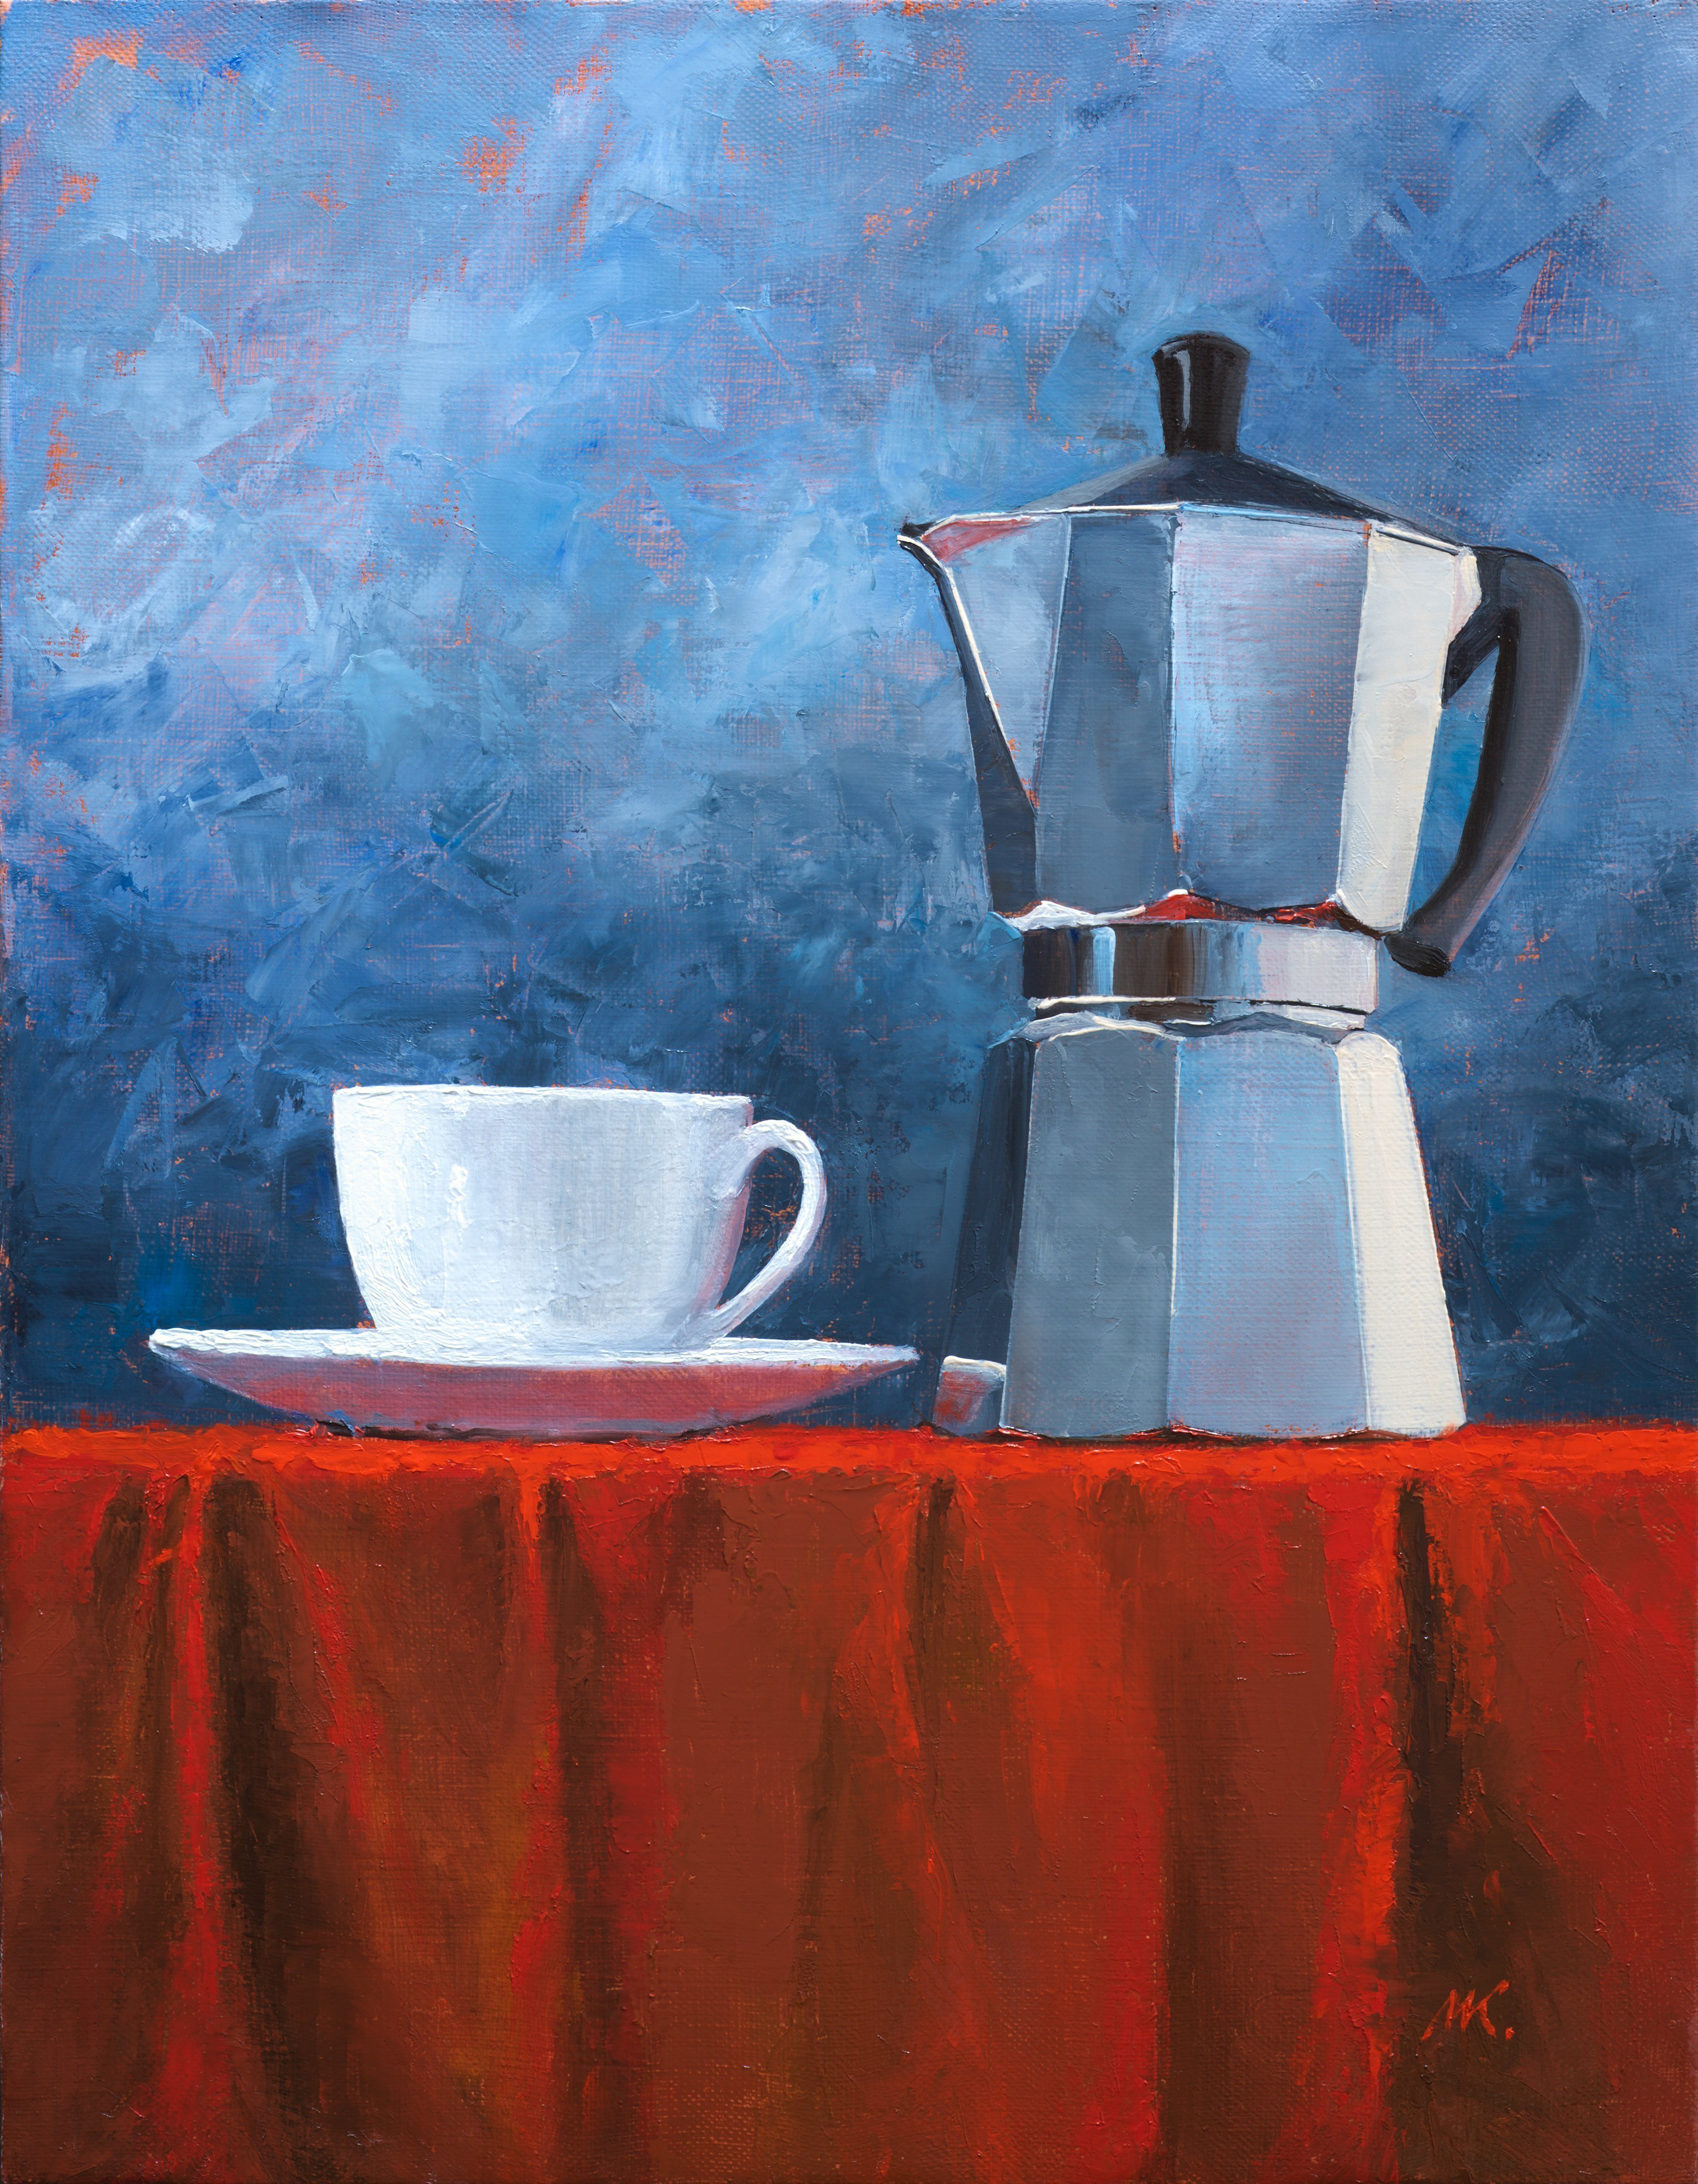 Mikhail Velavok; Moka , 2017, Original Painting Oil, 17.5 x 13.5 inches. Artwork description: 241 Original oil painting on canvas. The work is being sold unframed.cup, white cup, coffee, coffeepot, bialetti, moka pot, moka, mokha, red, wrinkle, fold, fabric, red fabric, tablecloth, still life, roasted coffee, dark roasted coffee...